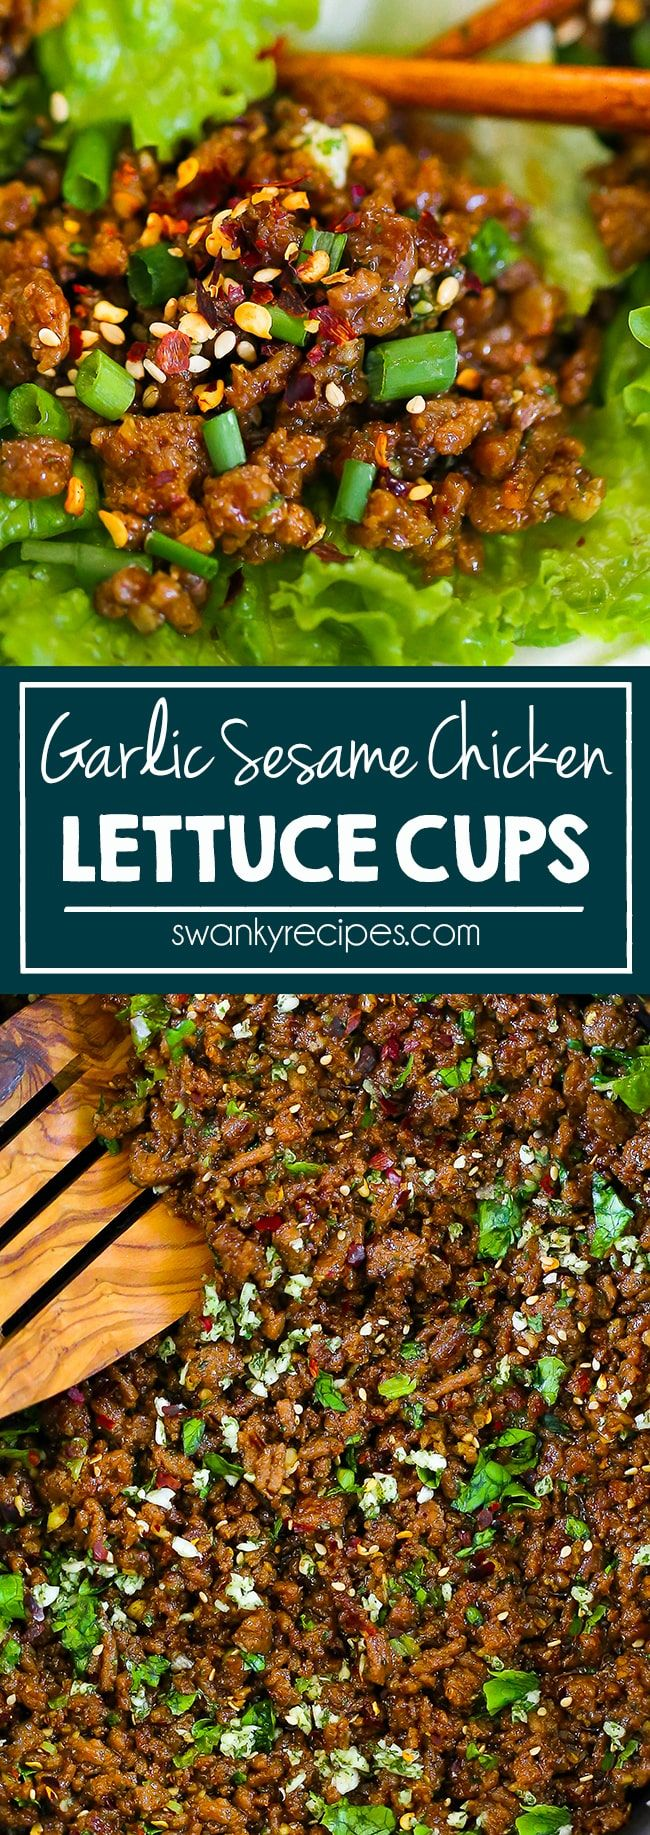 Garlic Sesame Chicken Lettuce Wraps